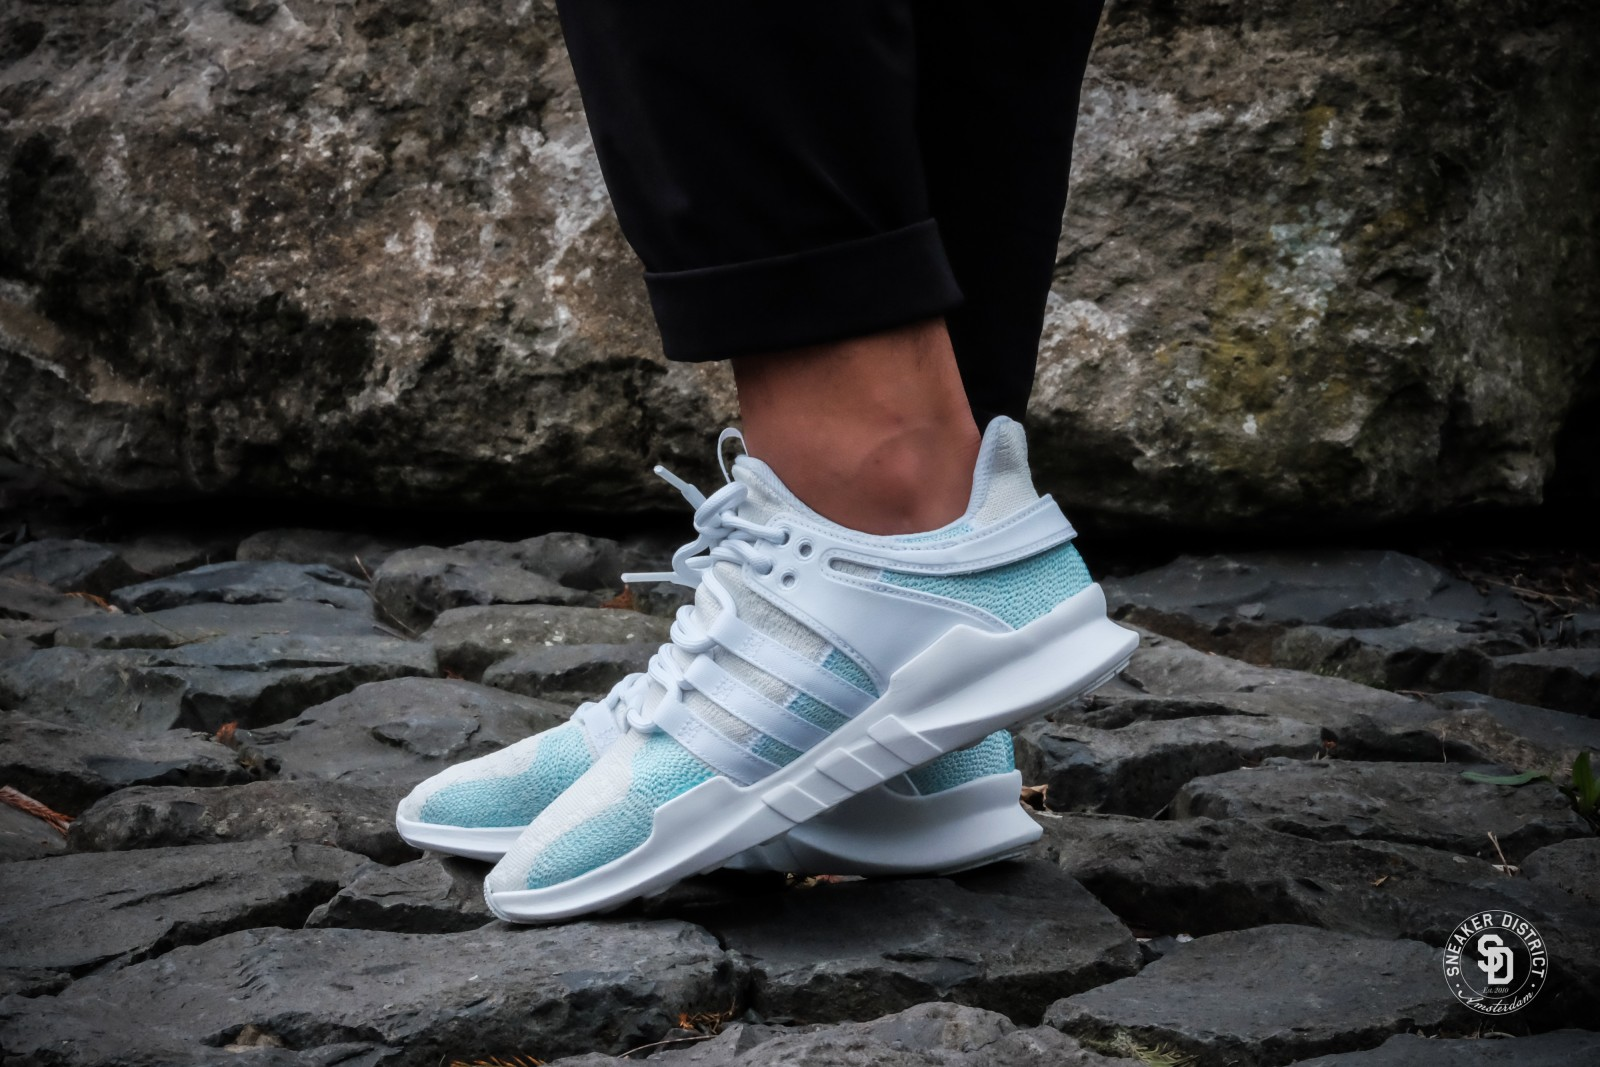 Are Adidas Eqt Running Shoes